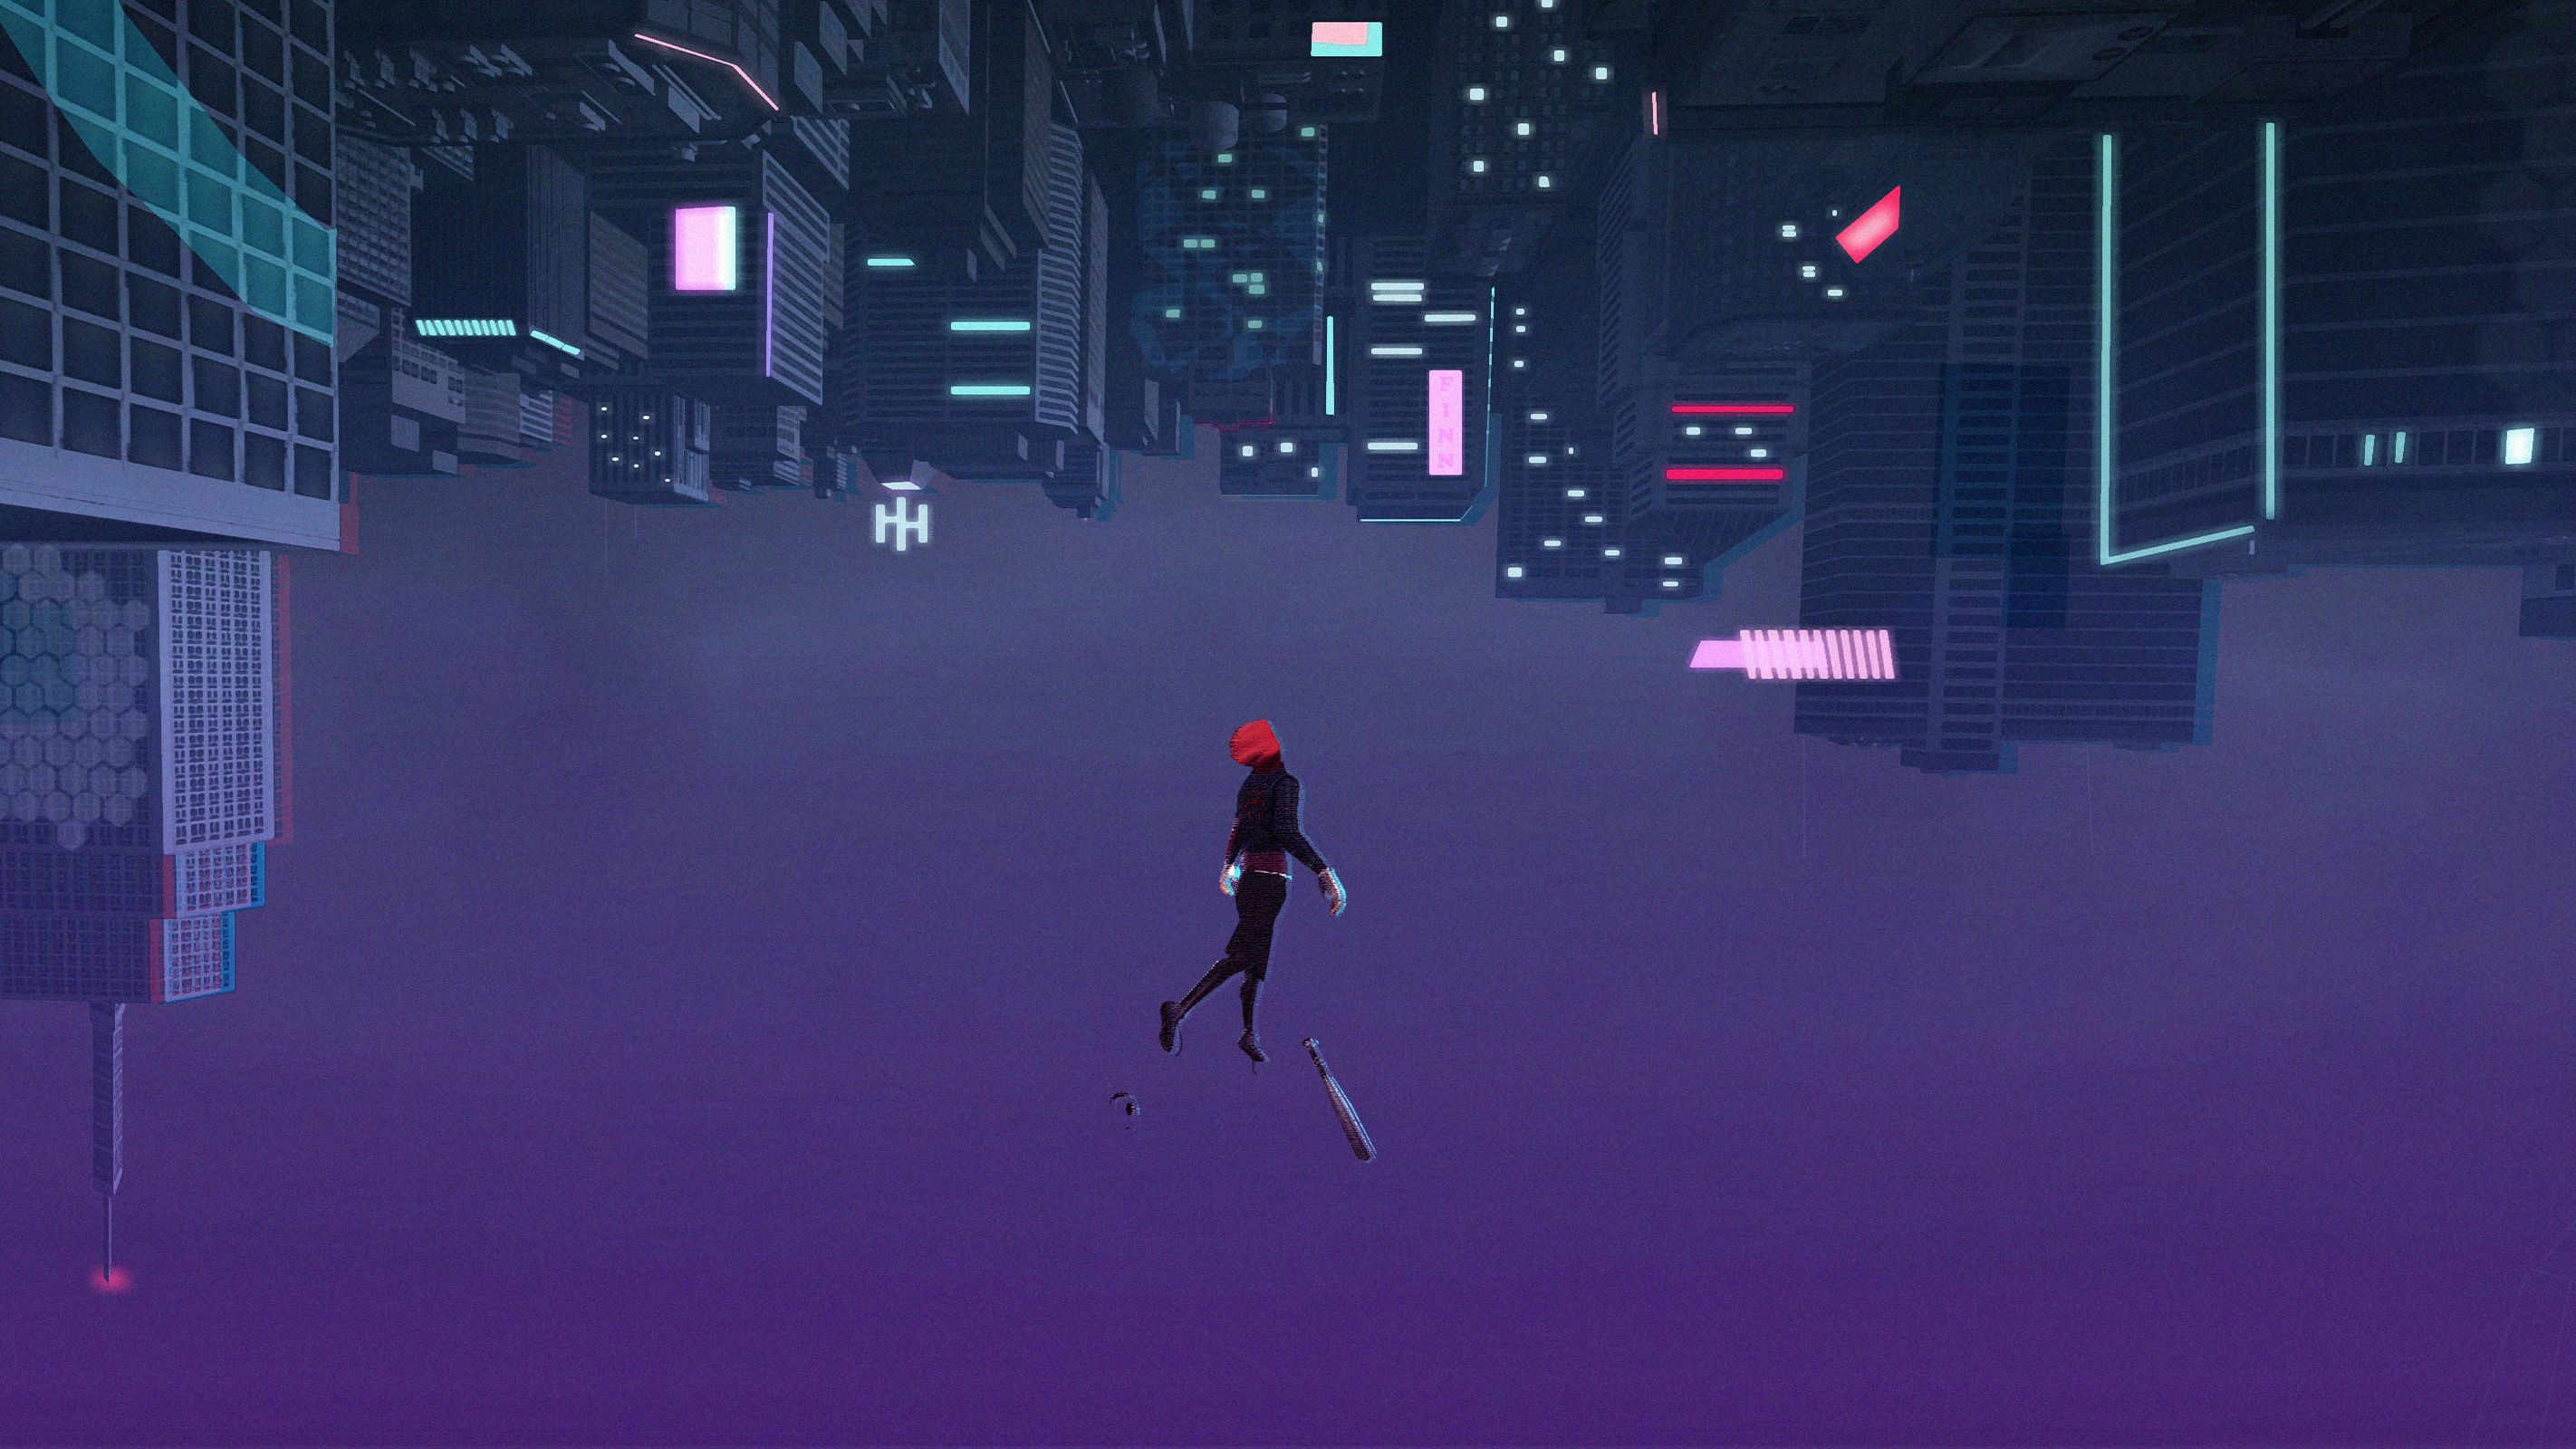 Into The Spider Verse Wallpapers Top Free Into The Spider Verse